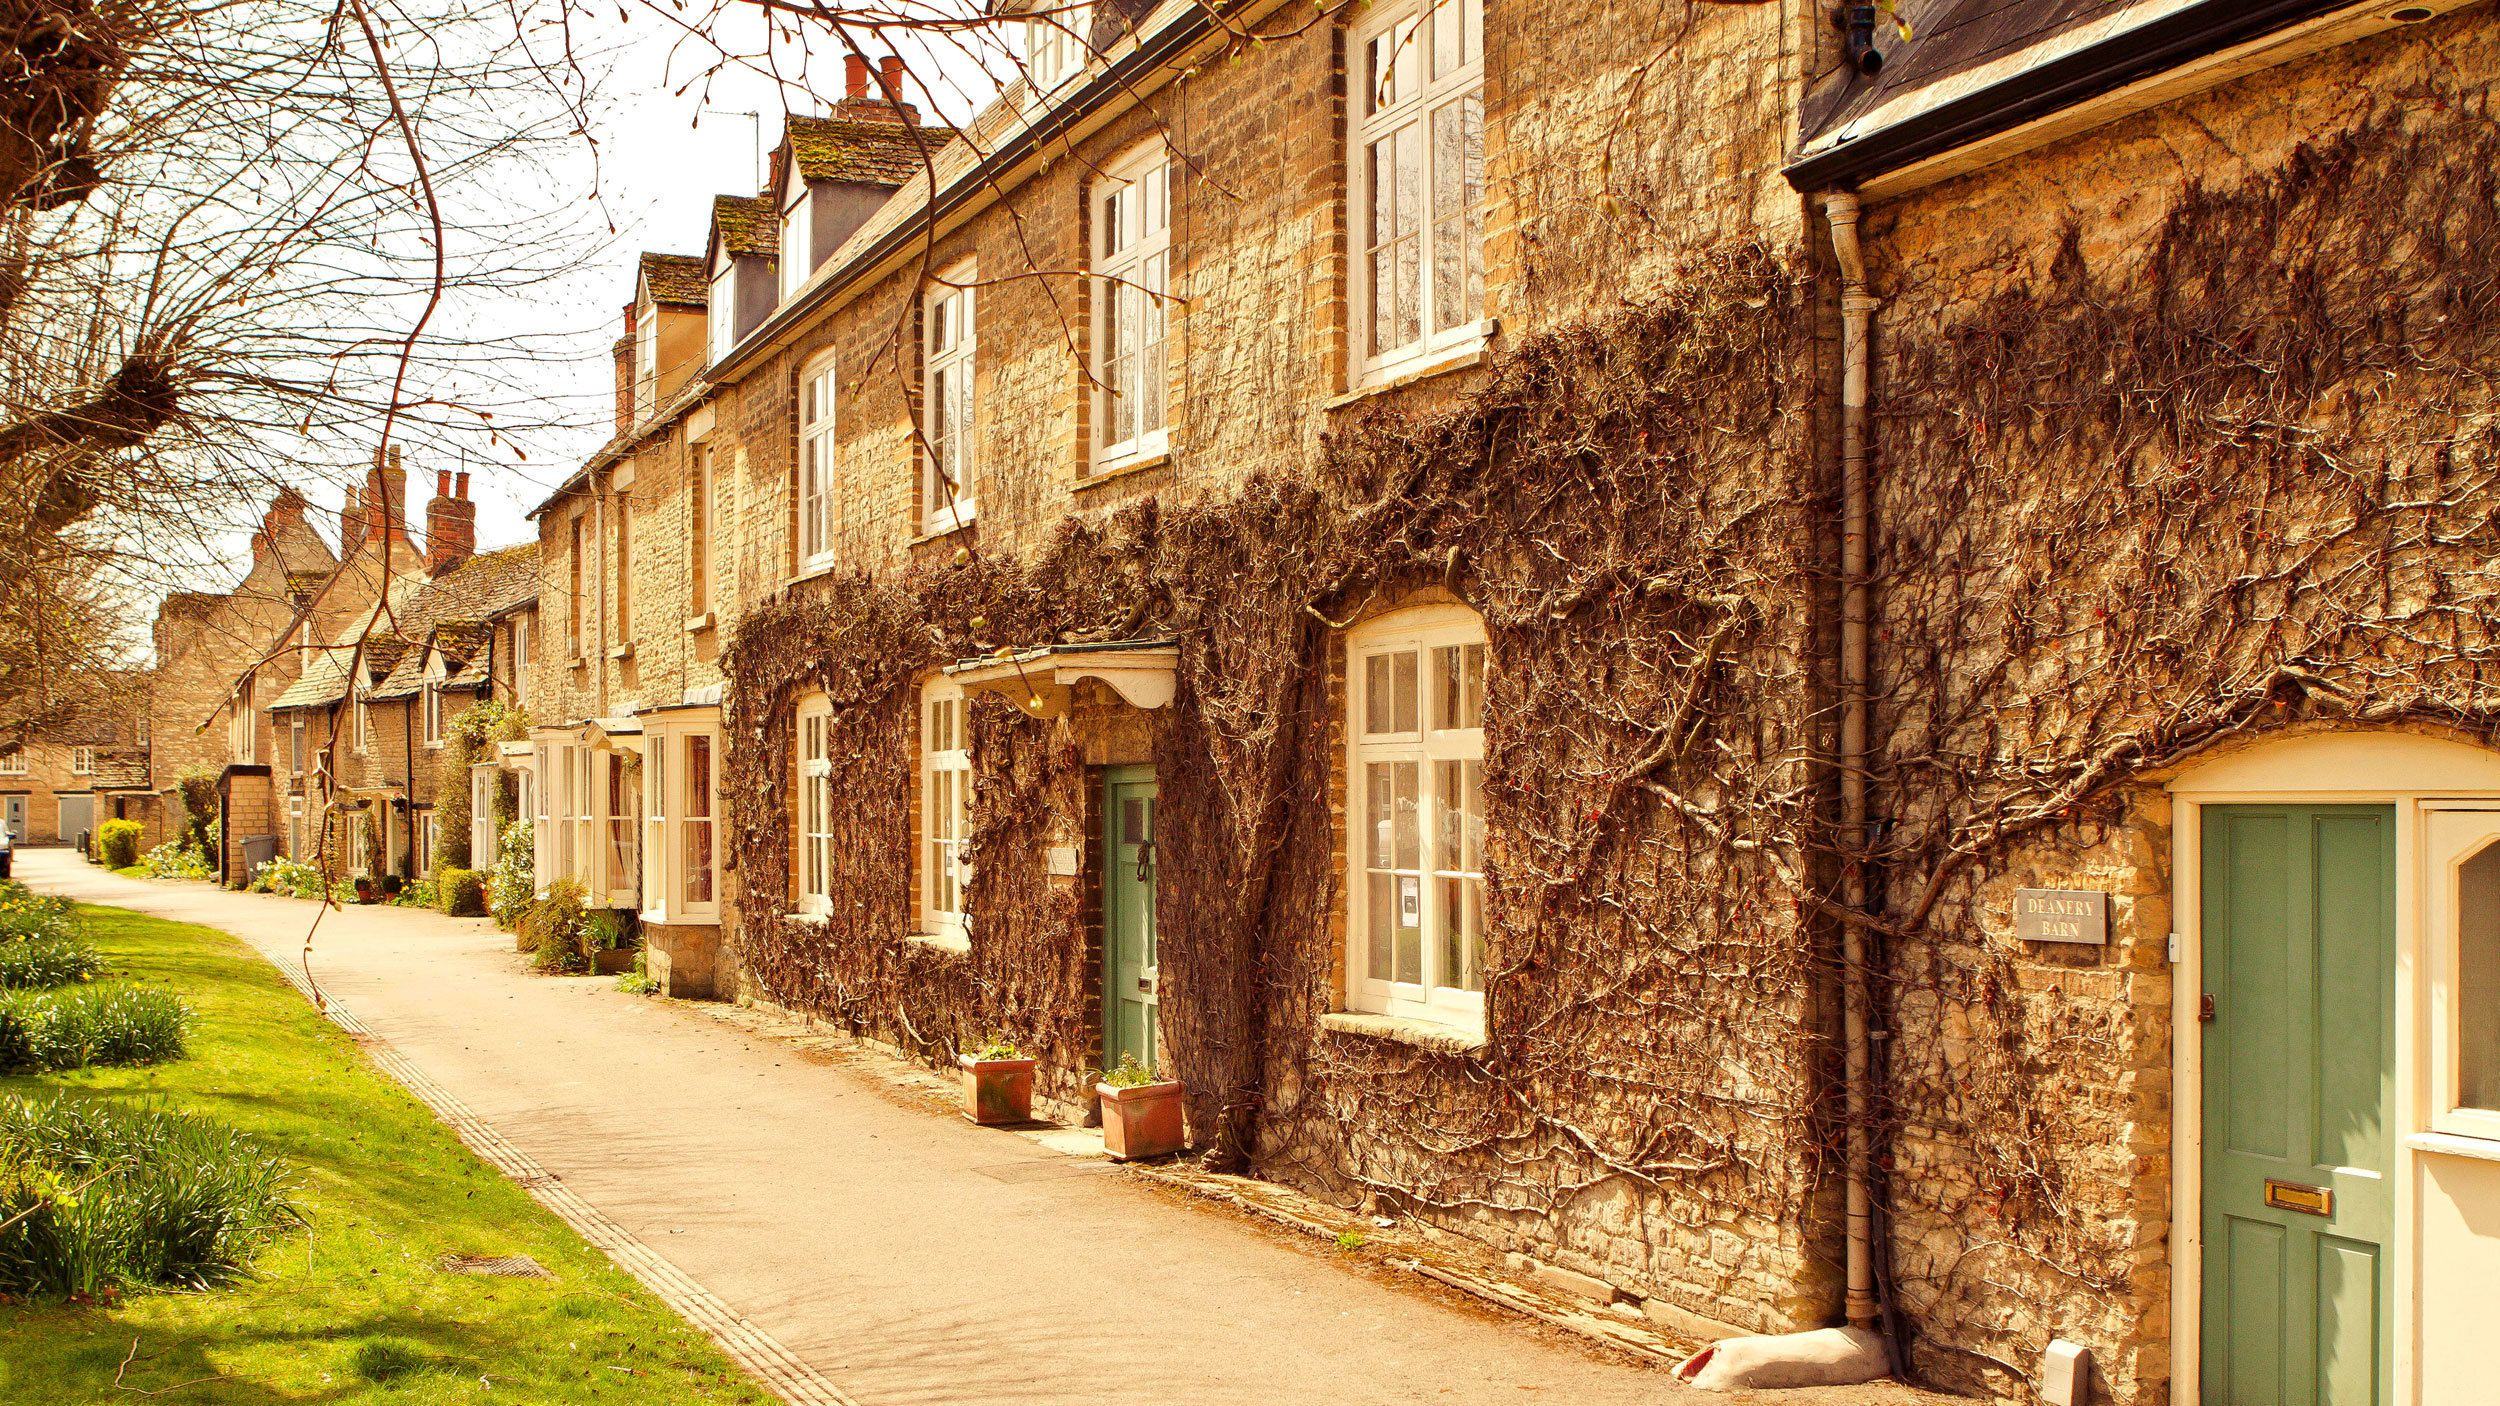 Bampton in the Oxfordshire Cotswolds